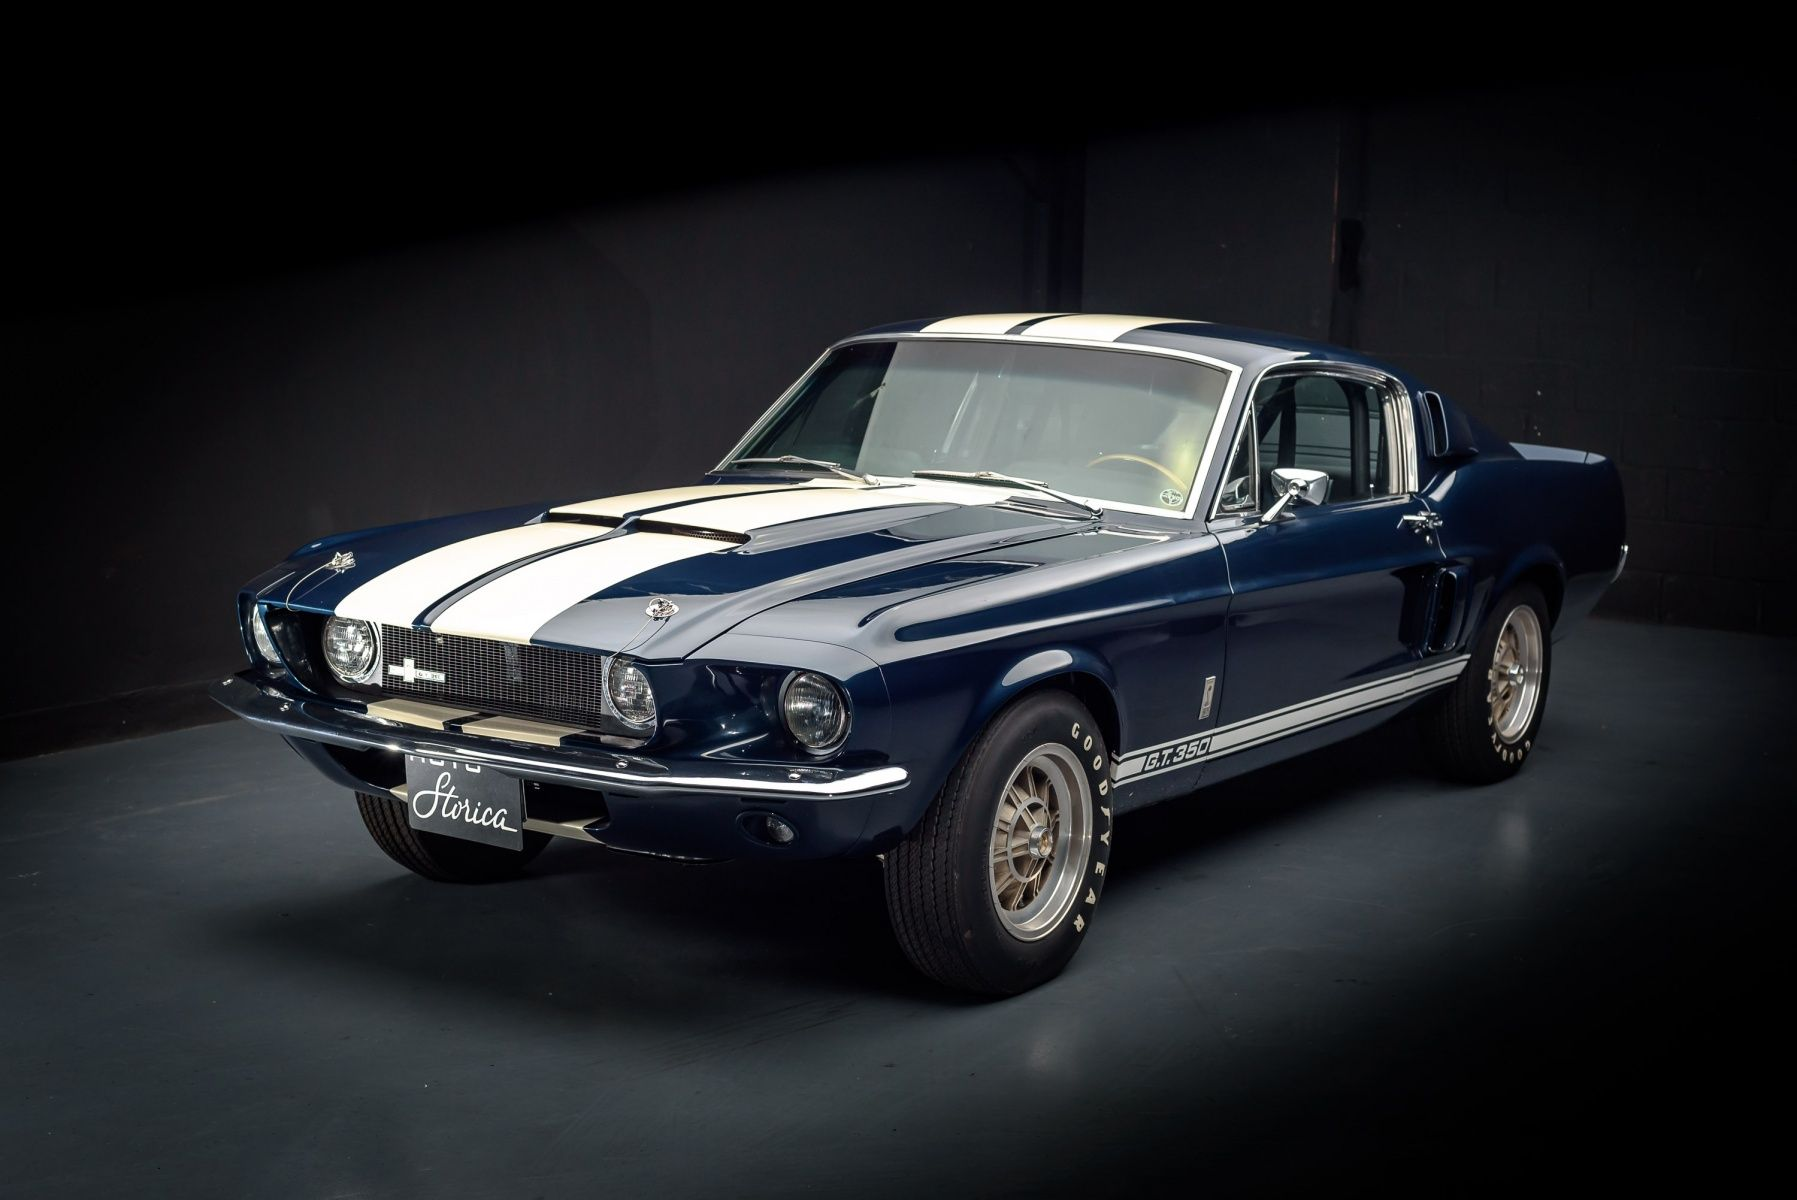 1967 Ford Shelby Gt350 Classic Driver Market Ford Mustang Shelby Gt500 Mustang Shelby Ford Shelby